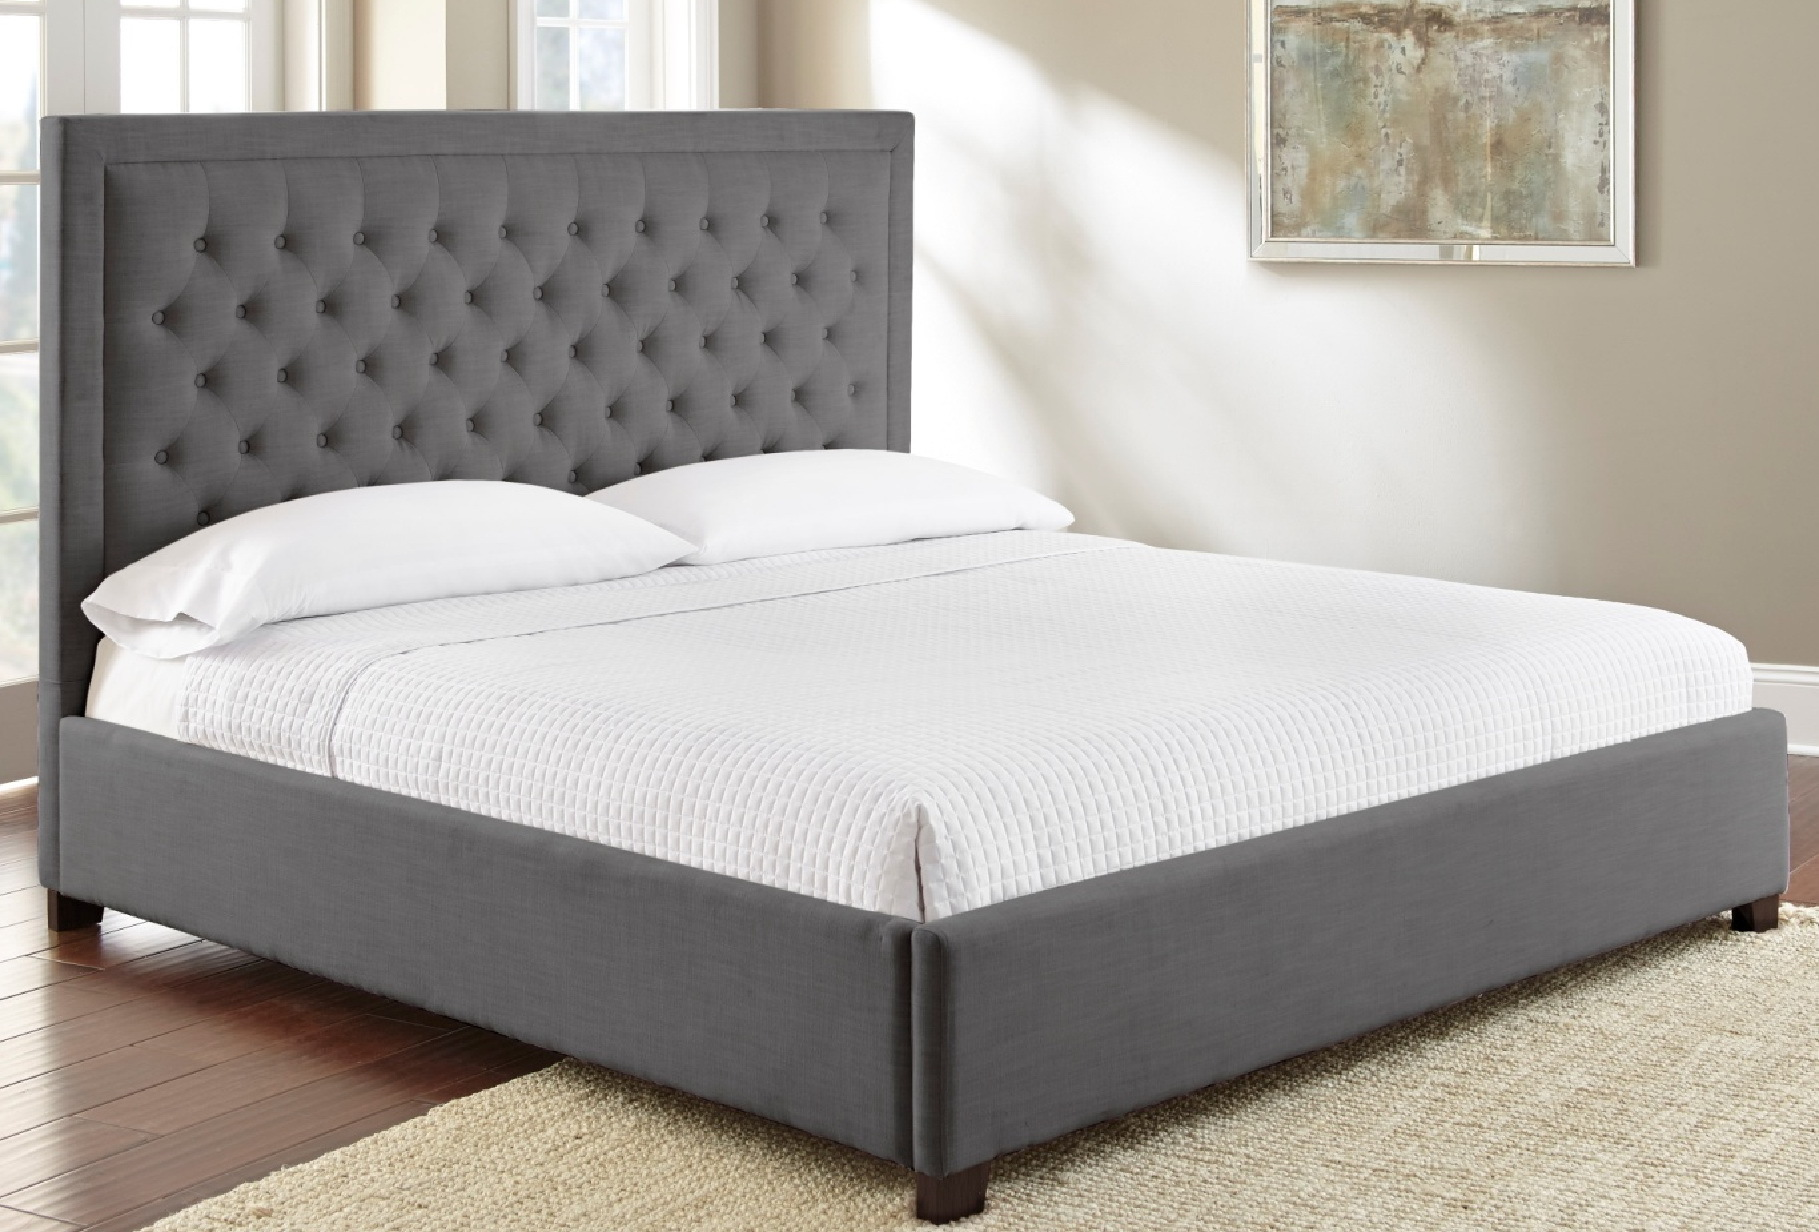 springfield furniture direct page 2 quality furniture discount